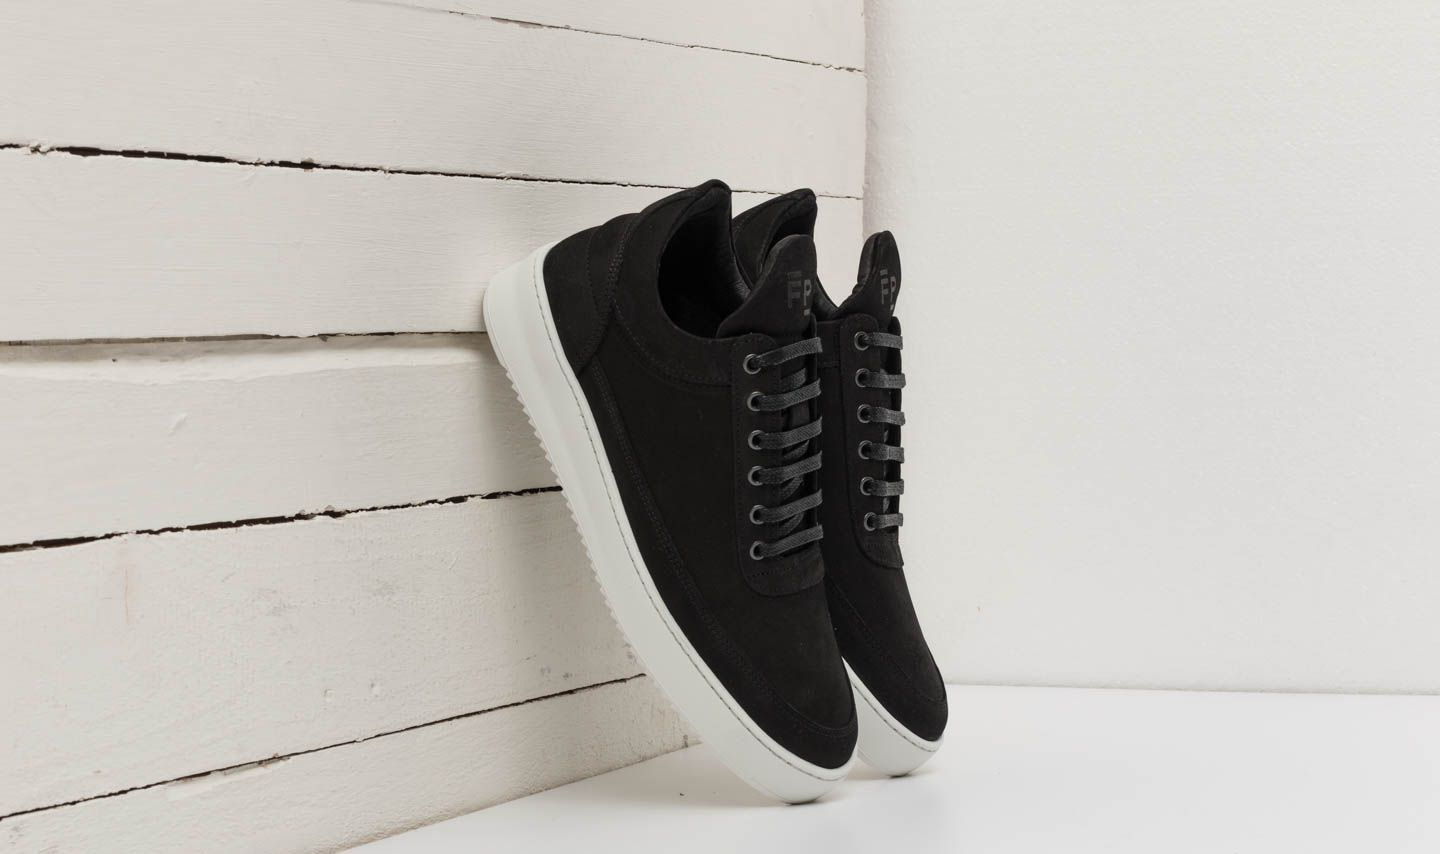 Moški čevlji Filling Pieces Low Top Ripple Basic Black/ White